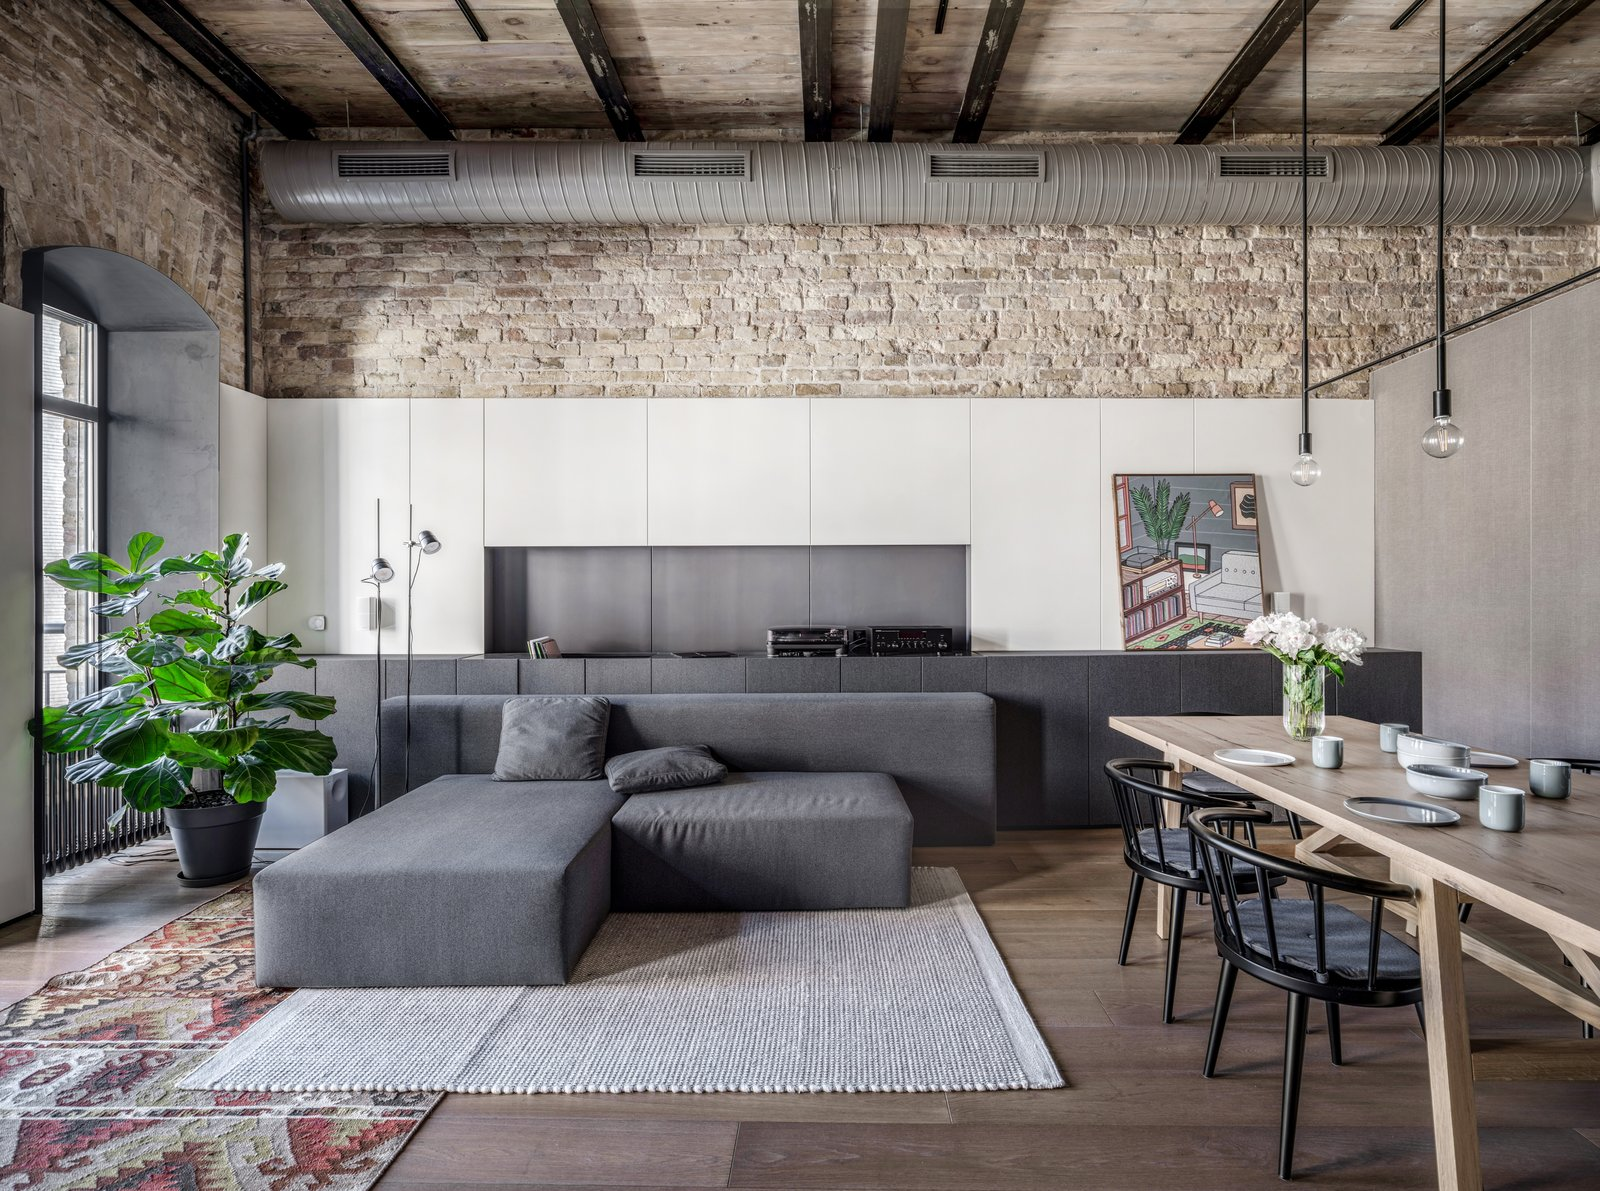 Living Room, Pendant Lighting, Floor Lighting, Medium Hardwood Floor, Storage, Rug Floor, Chair, Lamps, Table, and Sectional Luceplan Counterbalance floor lamp and Ditre Italia sofa.  Best Photos from A Monochromatic Palette Unifies Old and New in This Ukrainian Bachelor Pad